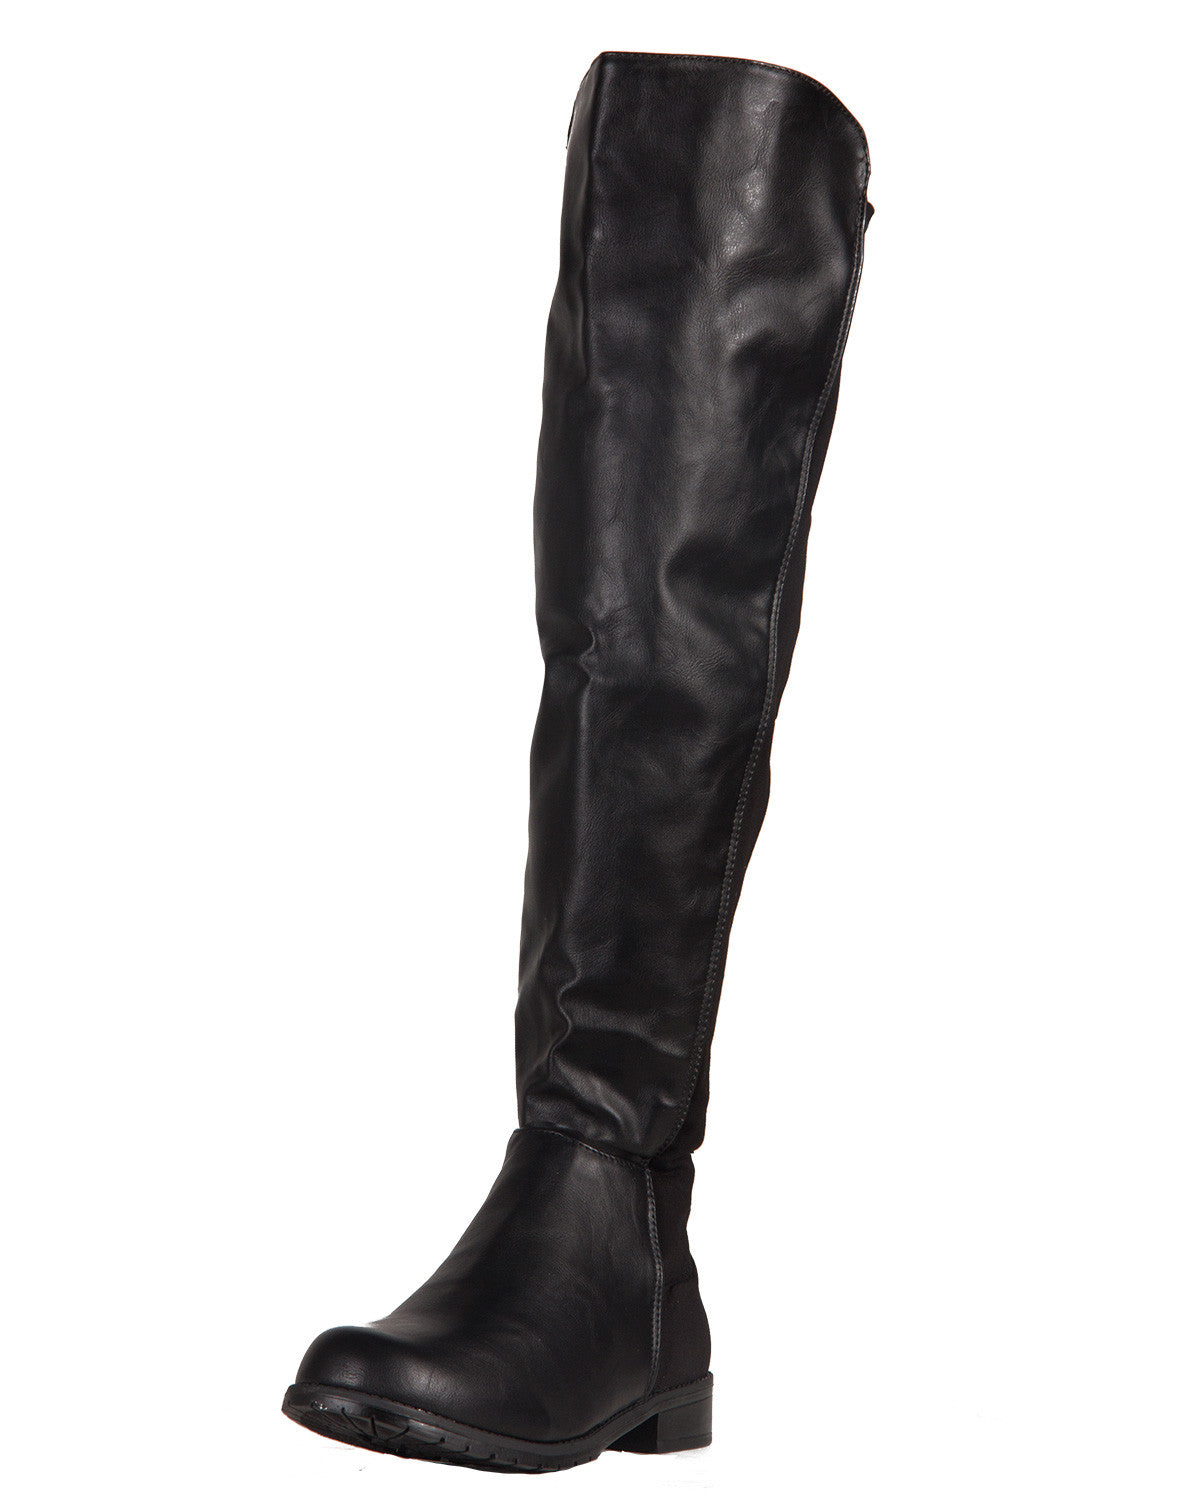 Contrast Over-The-Knee Boots